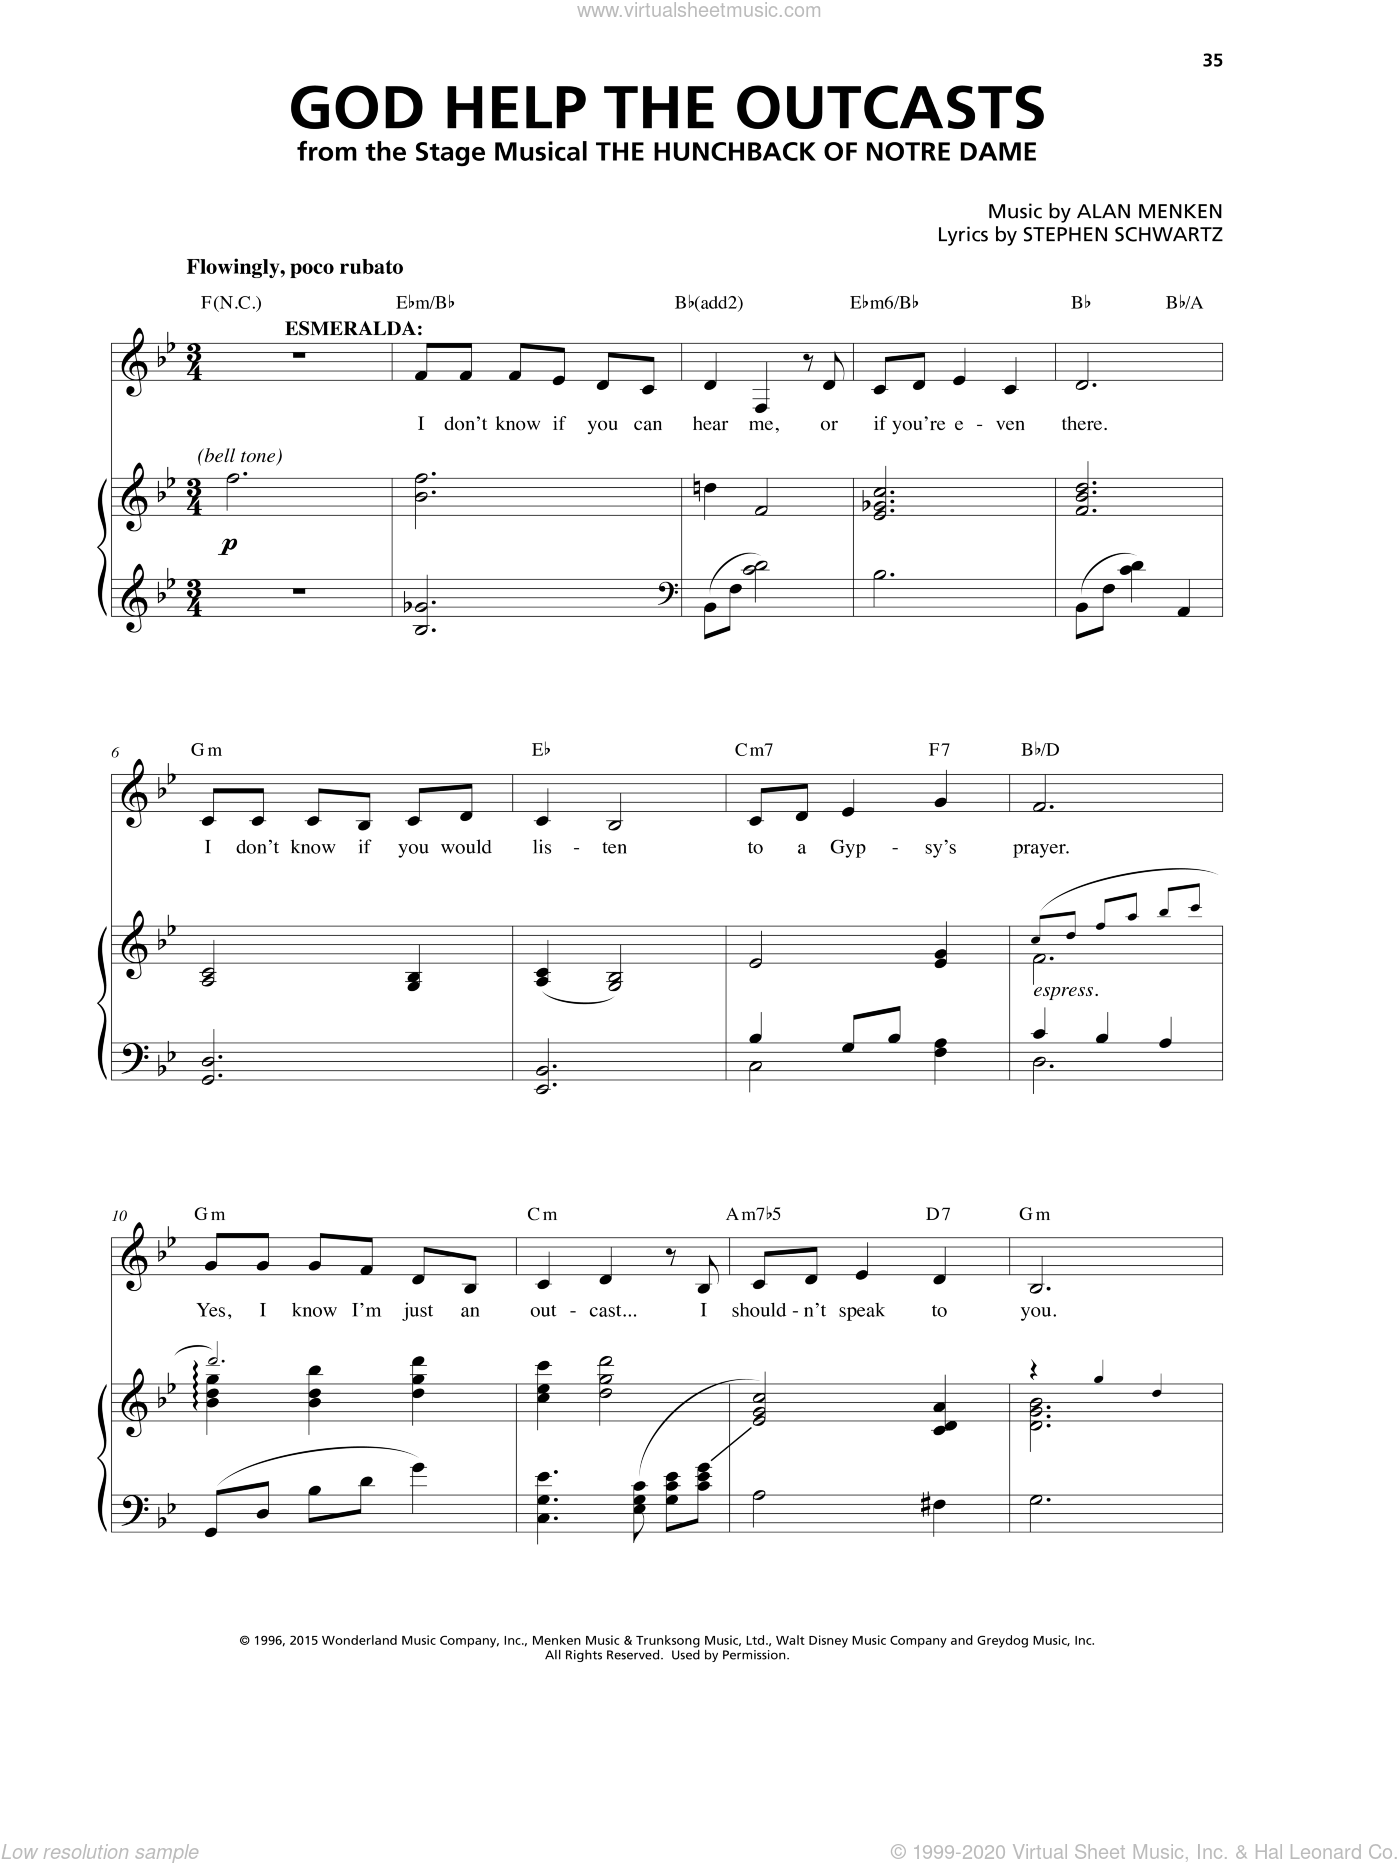 God Help The Outcasts sheet music for voice and piano by Alan Menken and Stephen Schwartz, intermediate skill level